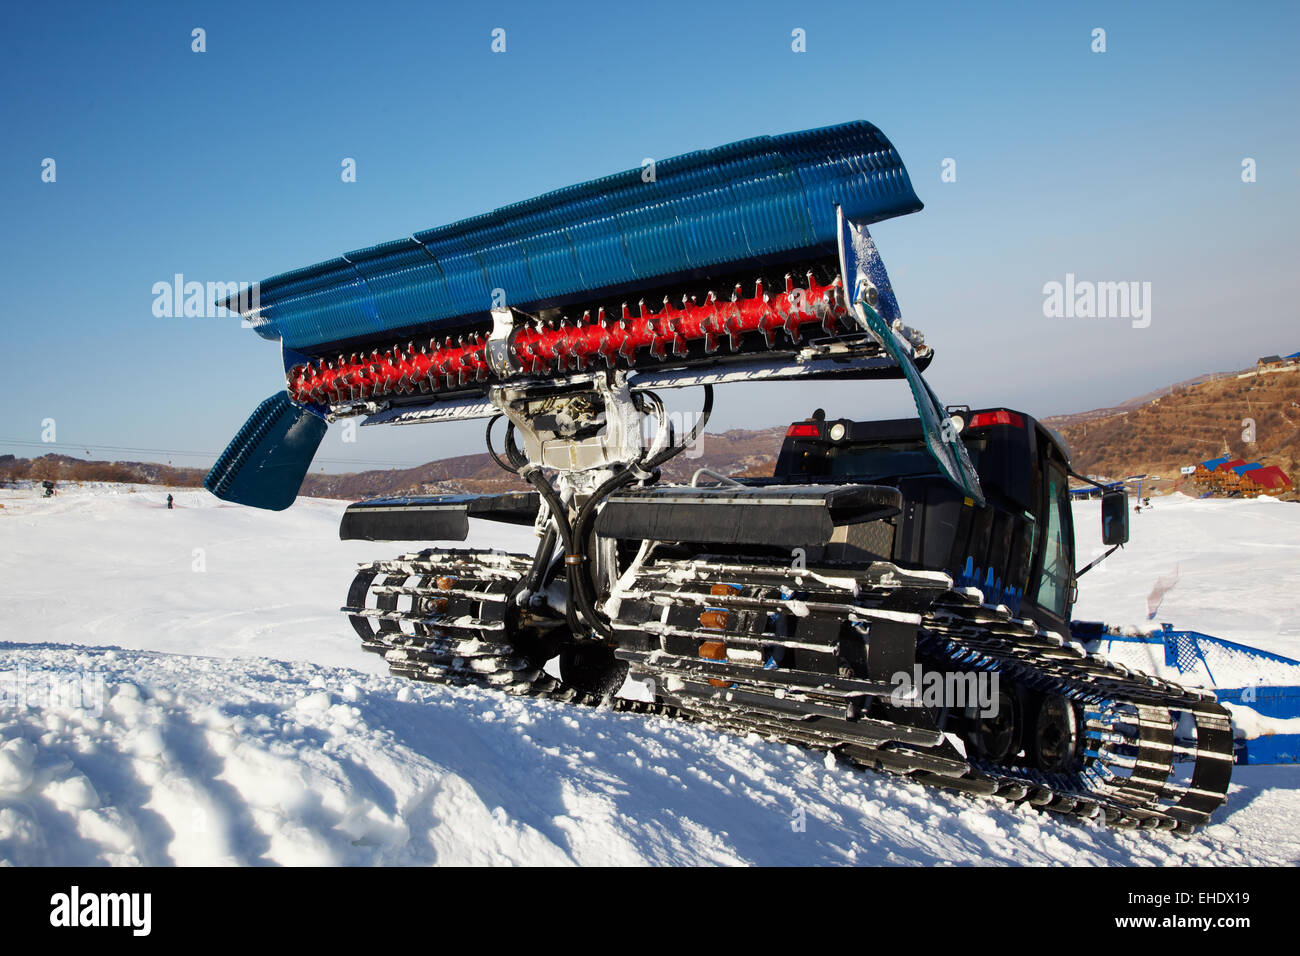 Piste machine (snow cat) - Stock Image